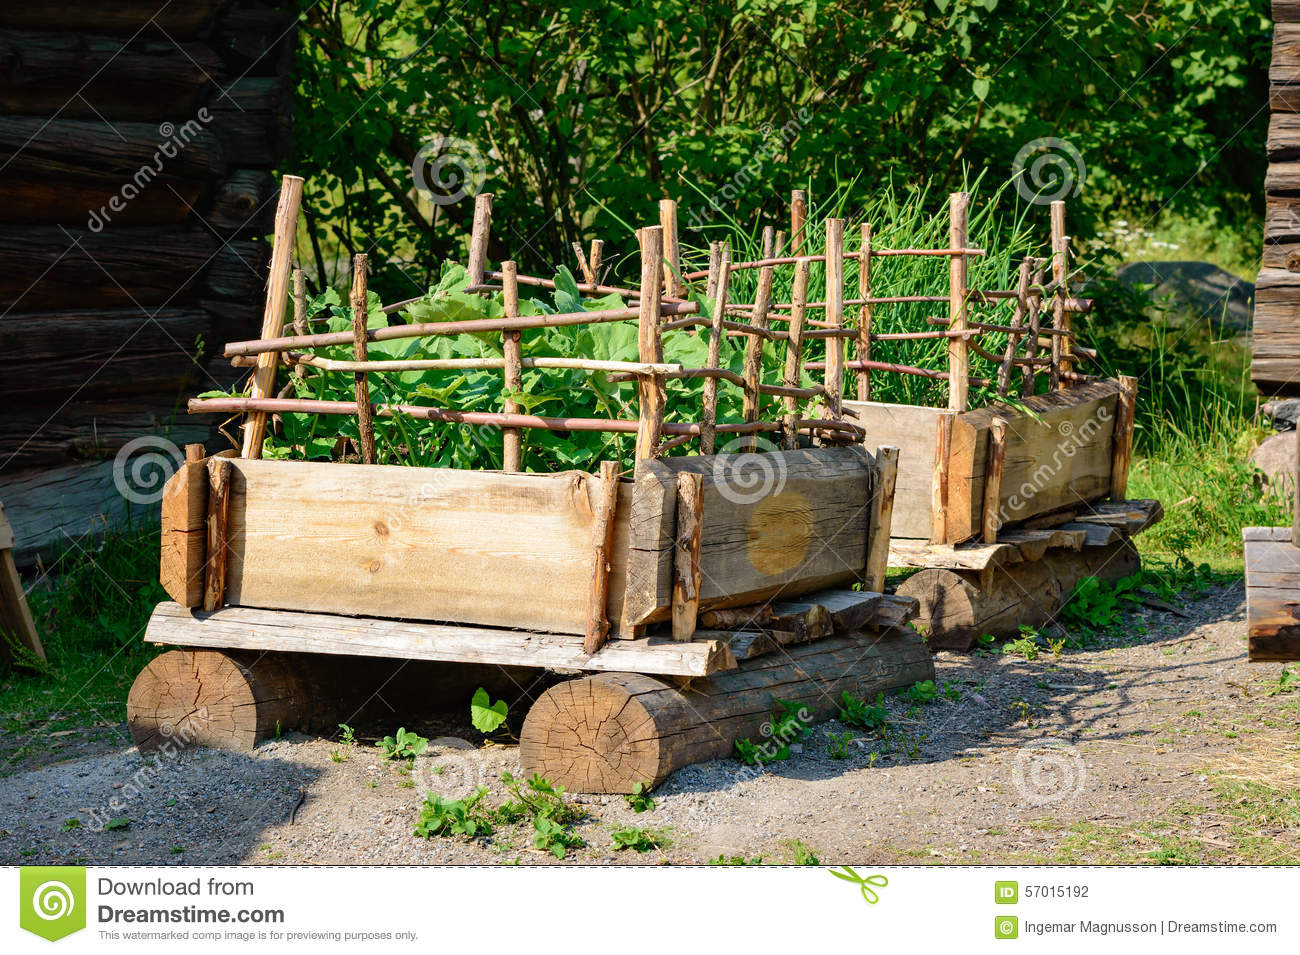 Jardin de palette photo stock image 57015192 for Jardin en palette